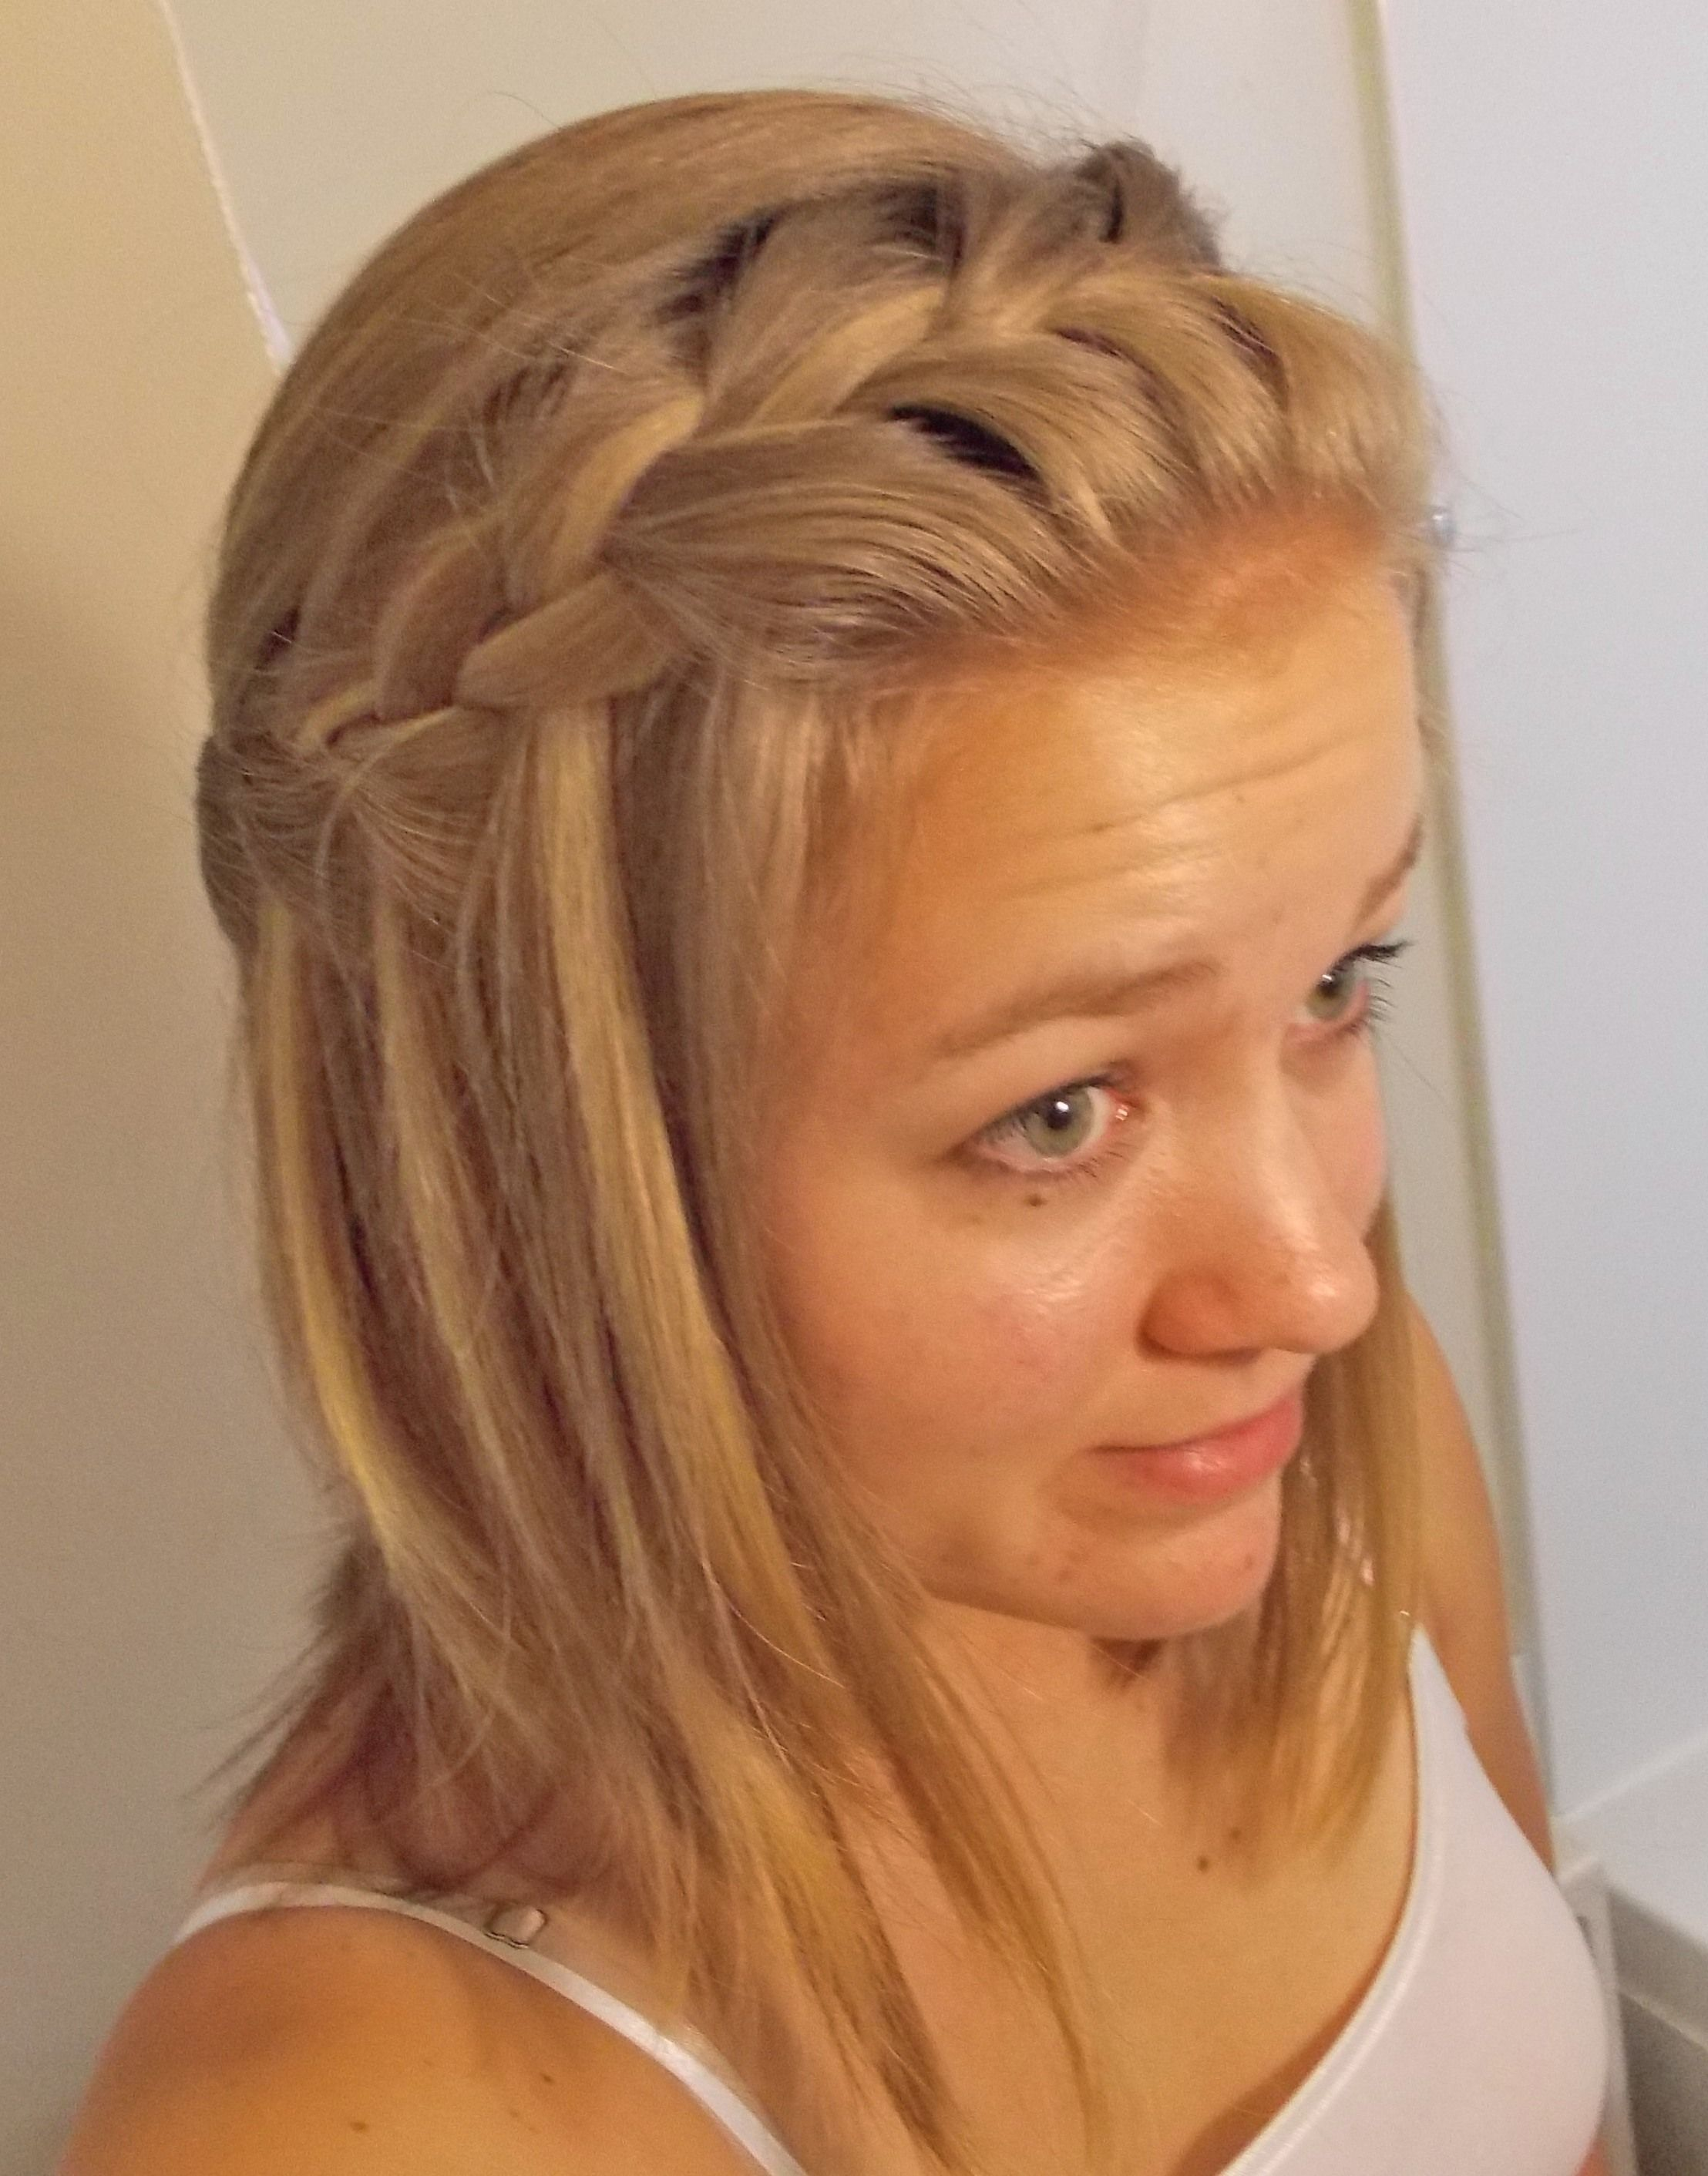 Fantastic 1000 Images About Braid Hairstyle On Pinterest Waterfall Braids Short Hairstyles For Black Women Fulllsitofus